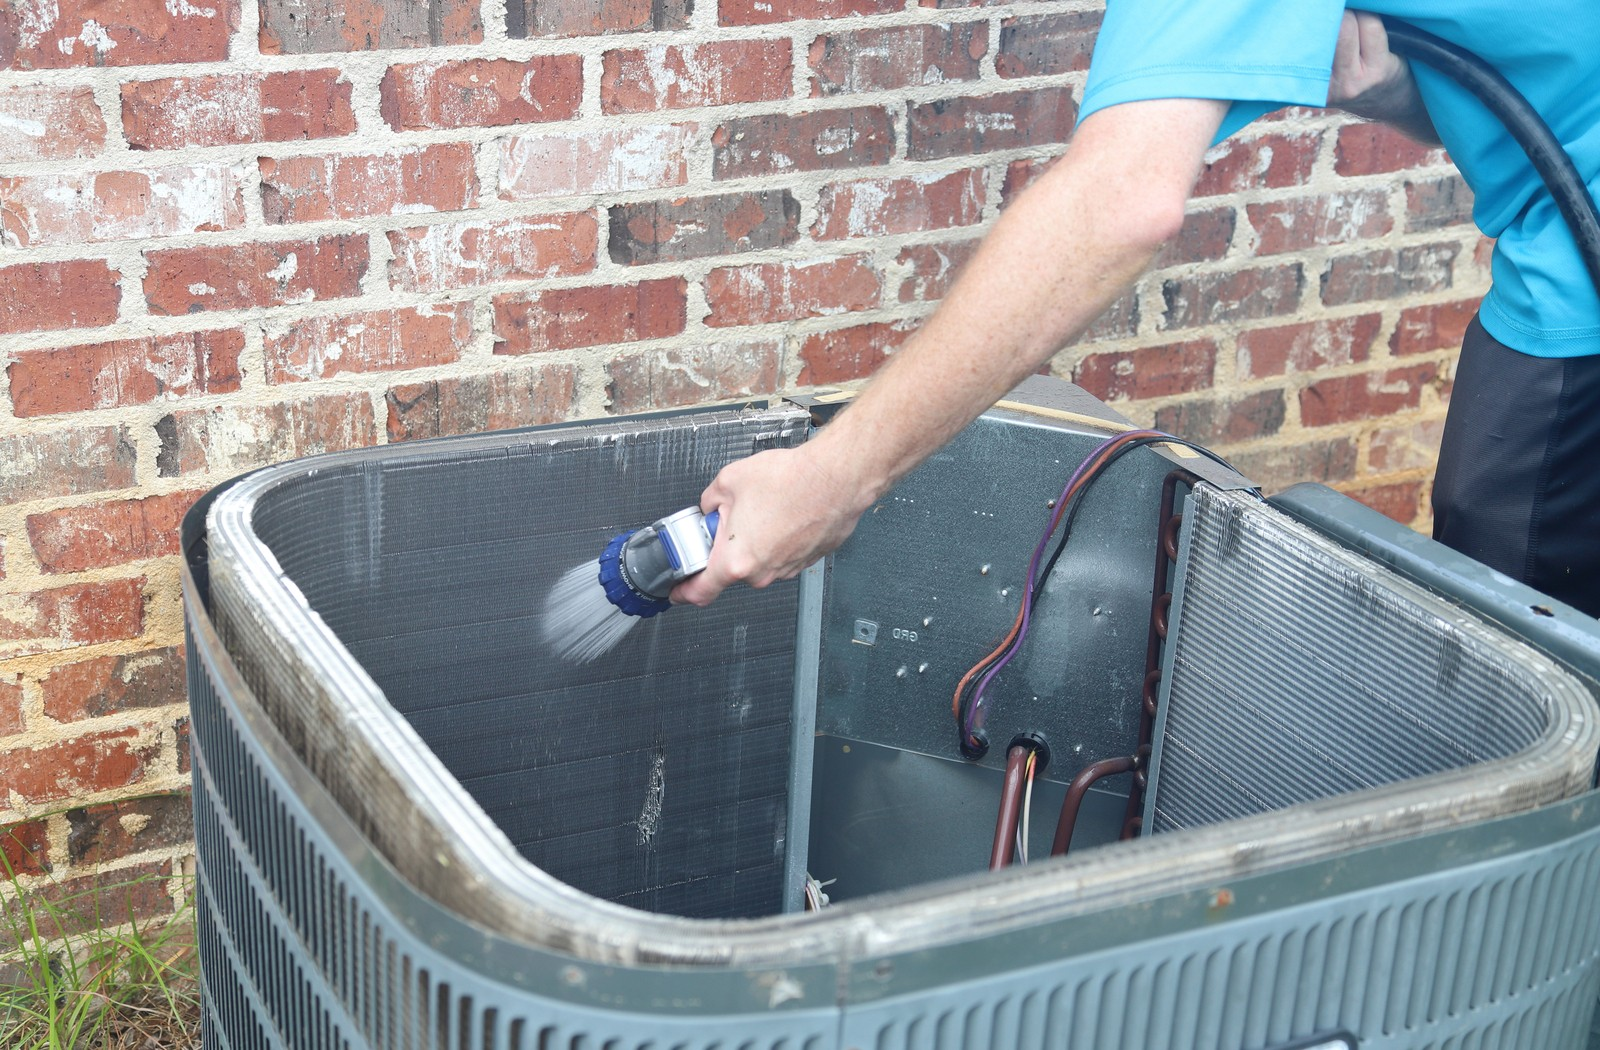 Man using a garden hose to clean air conditioner coils